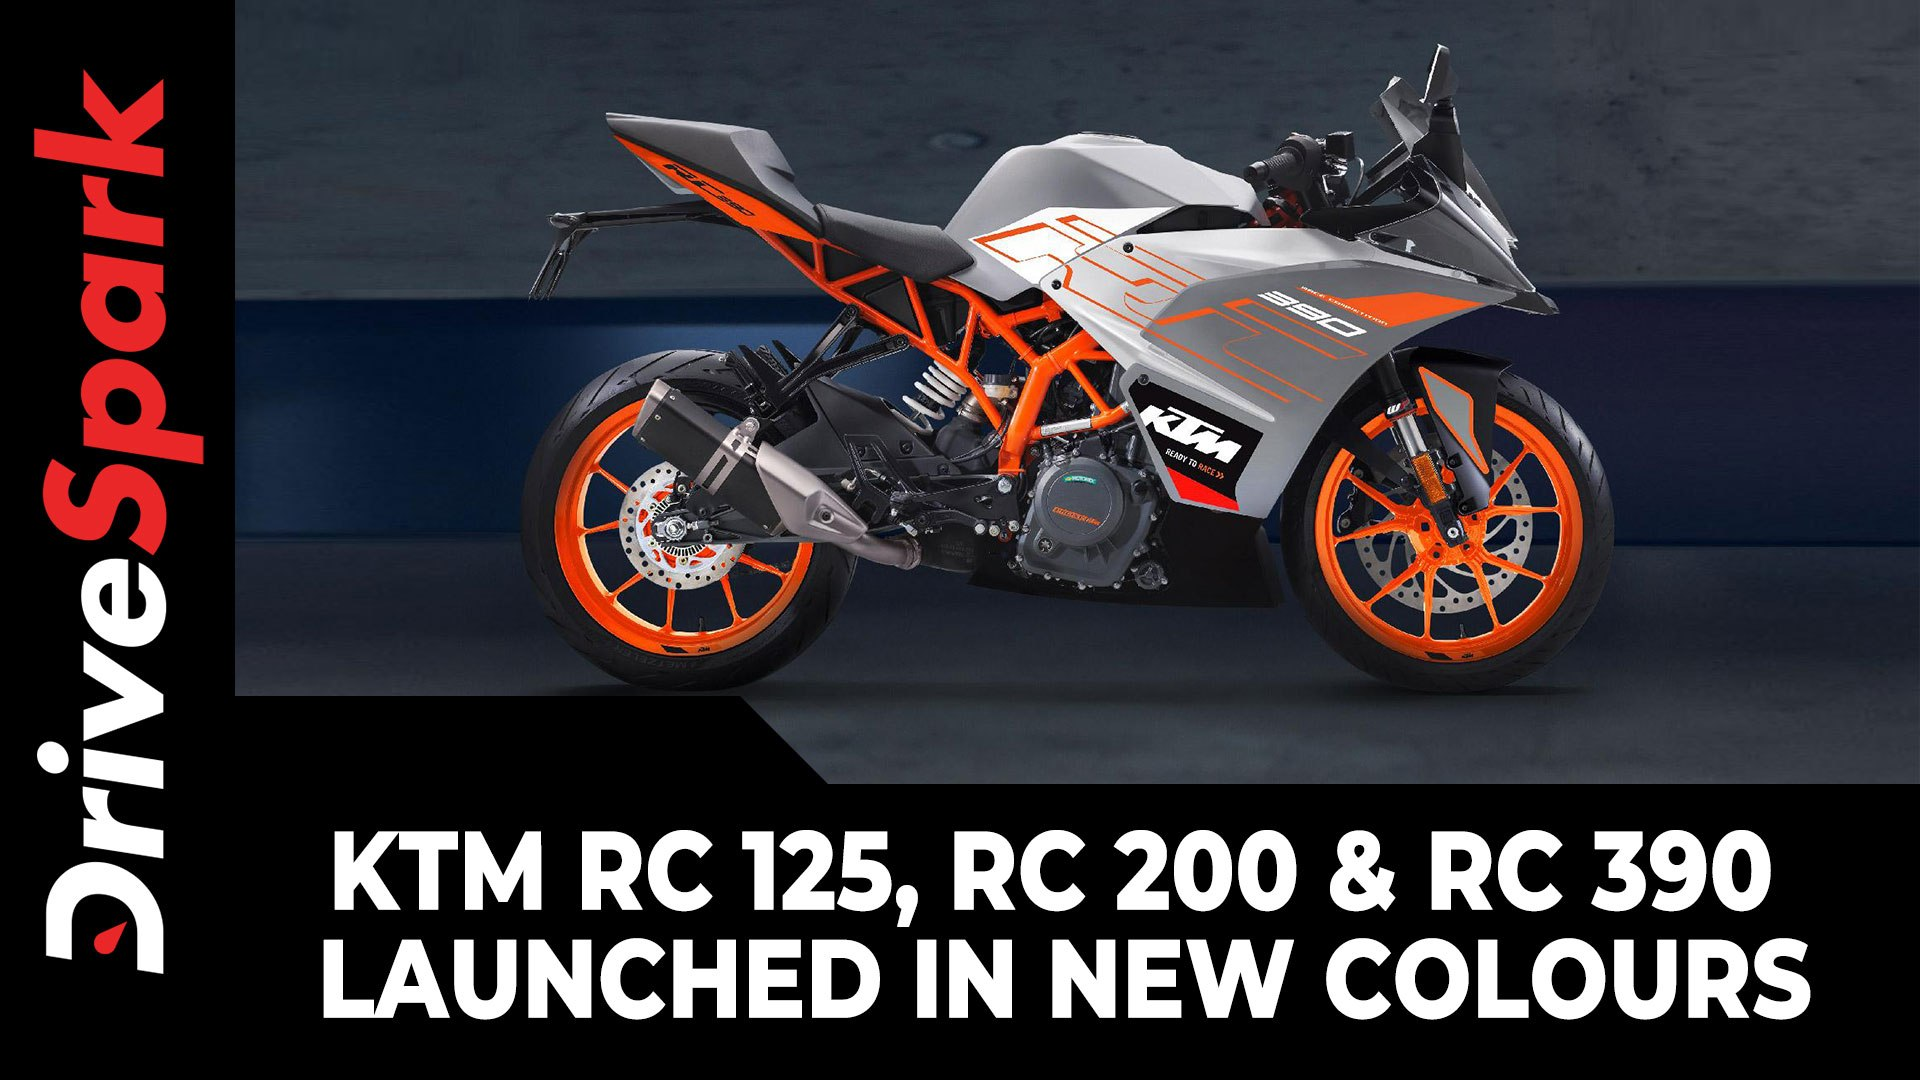 Ktm Rc 125 Rc 200 Rc 390 Launched In New Colours Price Other Details Video Dailymotion